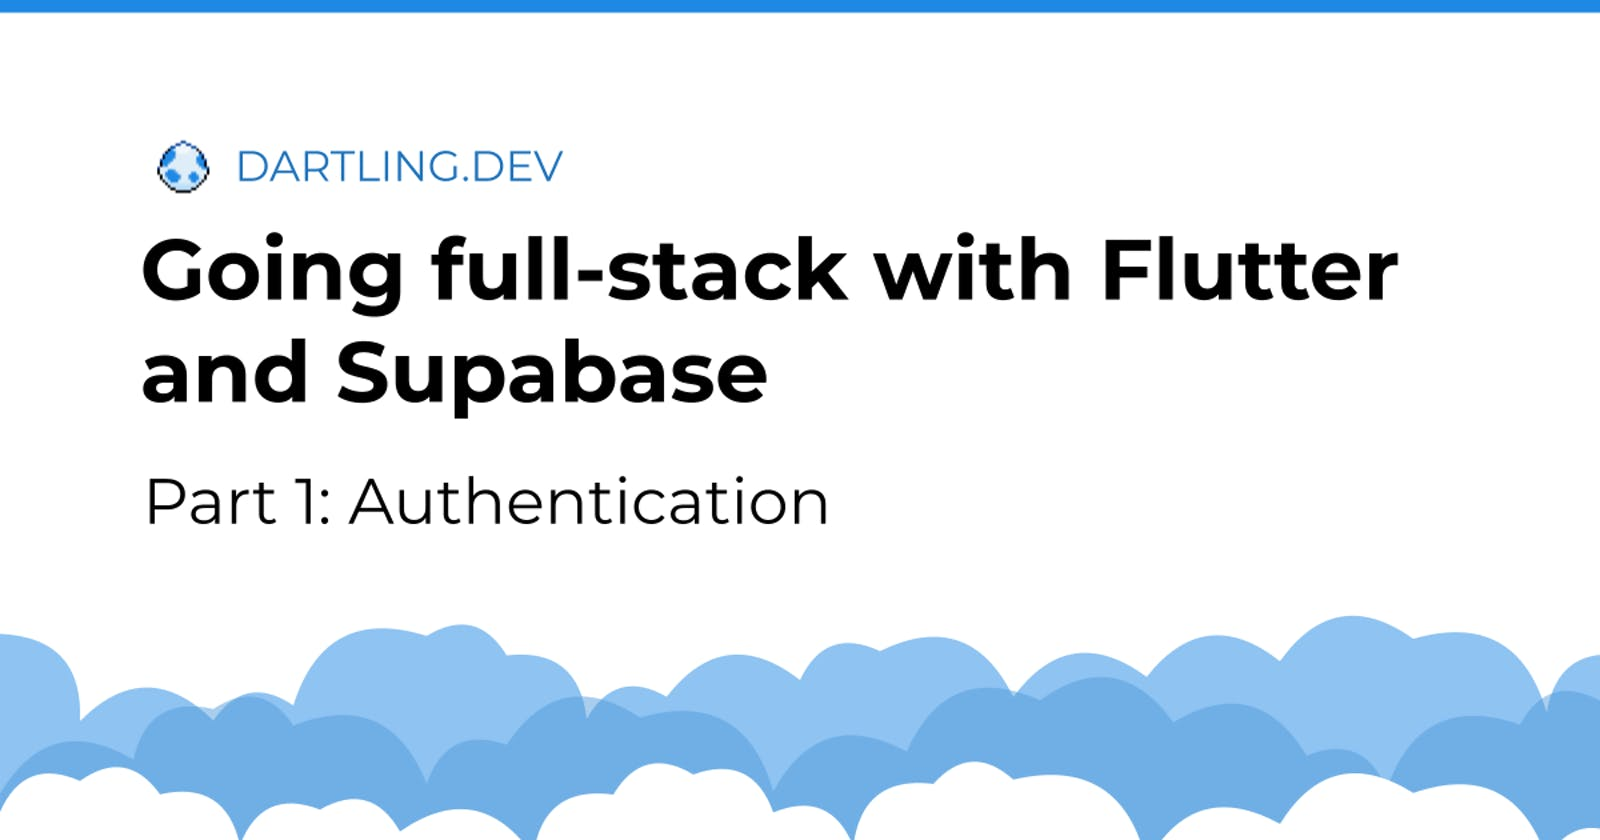 Going full-stack with Flutter and Supabase - Part 1: Authentication